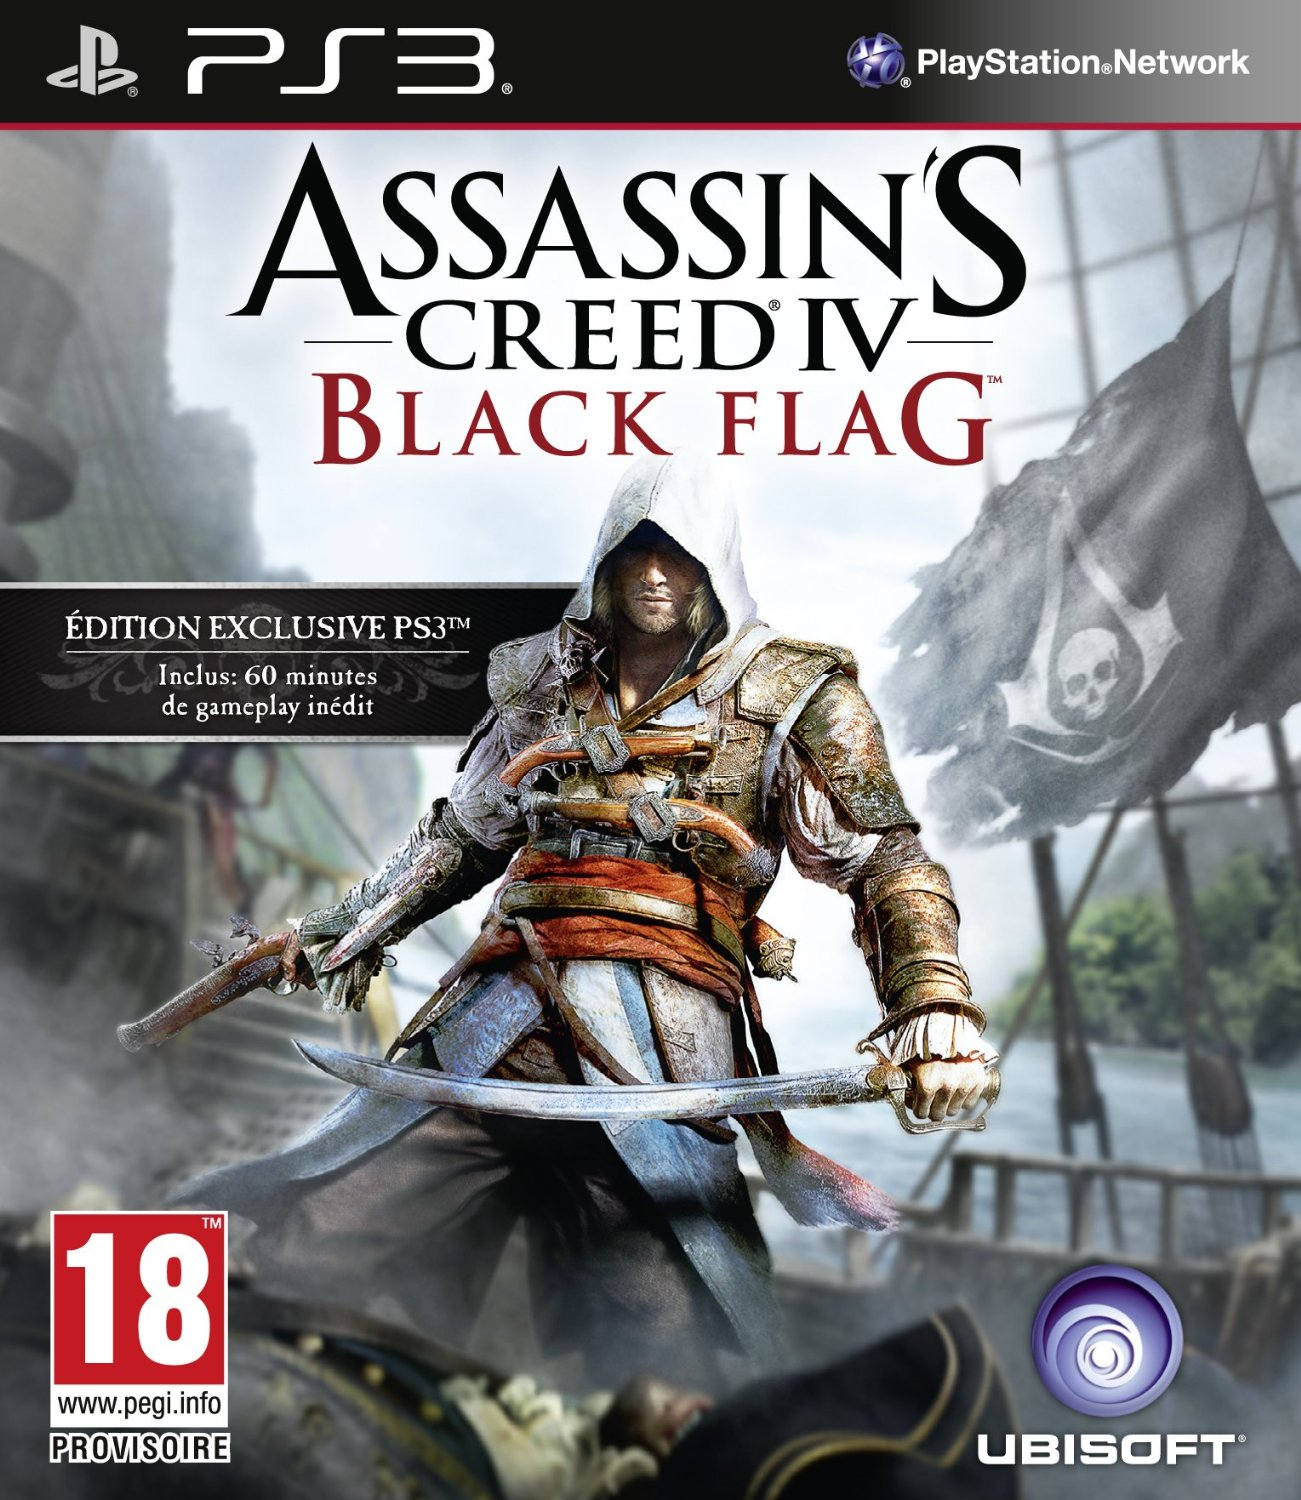 Assassins Creed IV Black Flag Announced PS3 Cover